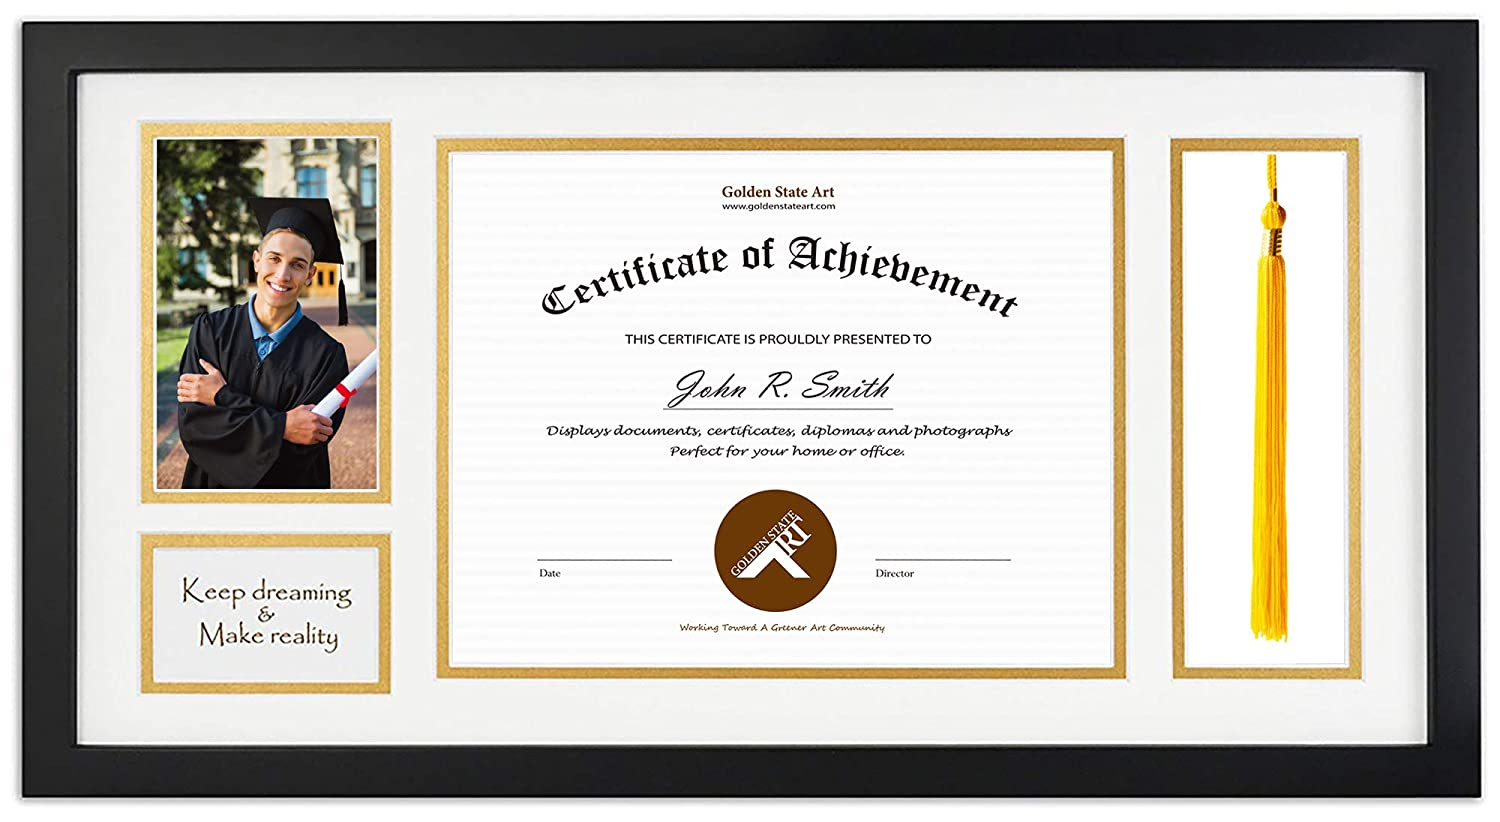 with Double Mat Diploma Tassel Shadow Box 11x22 Frame for 8.5x11 Document//Certificate /& 4x6 Photo Black GSA-G-2016BS-1122-01-SF0279 Tassel Holder /& Real Glass White Over Gold Golden State Art